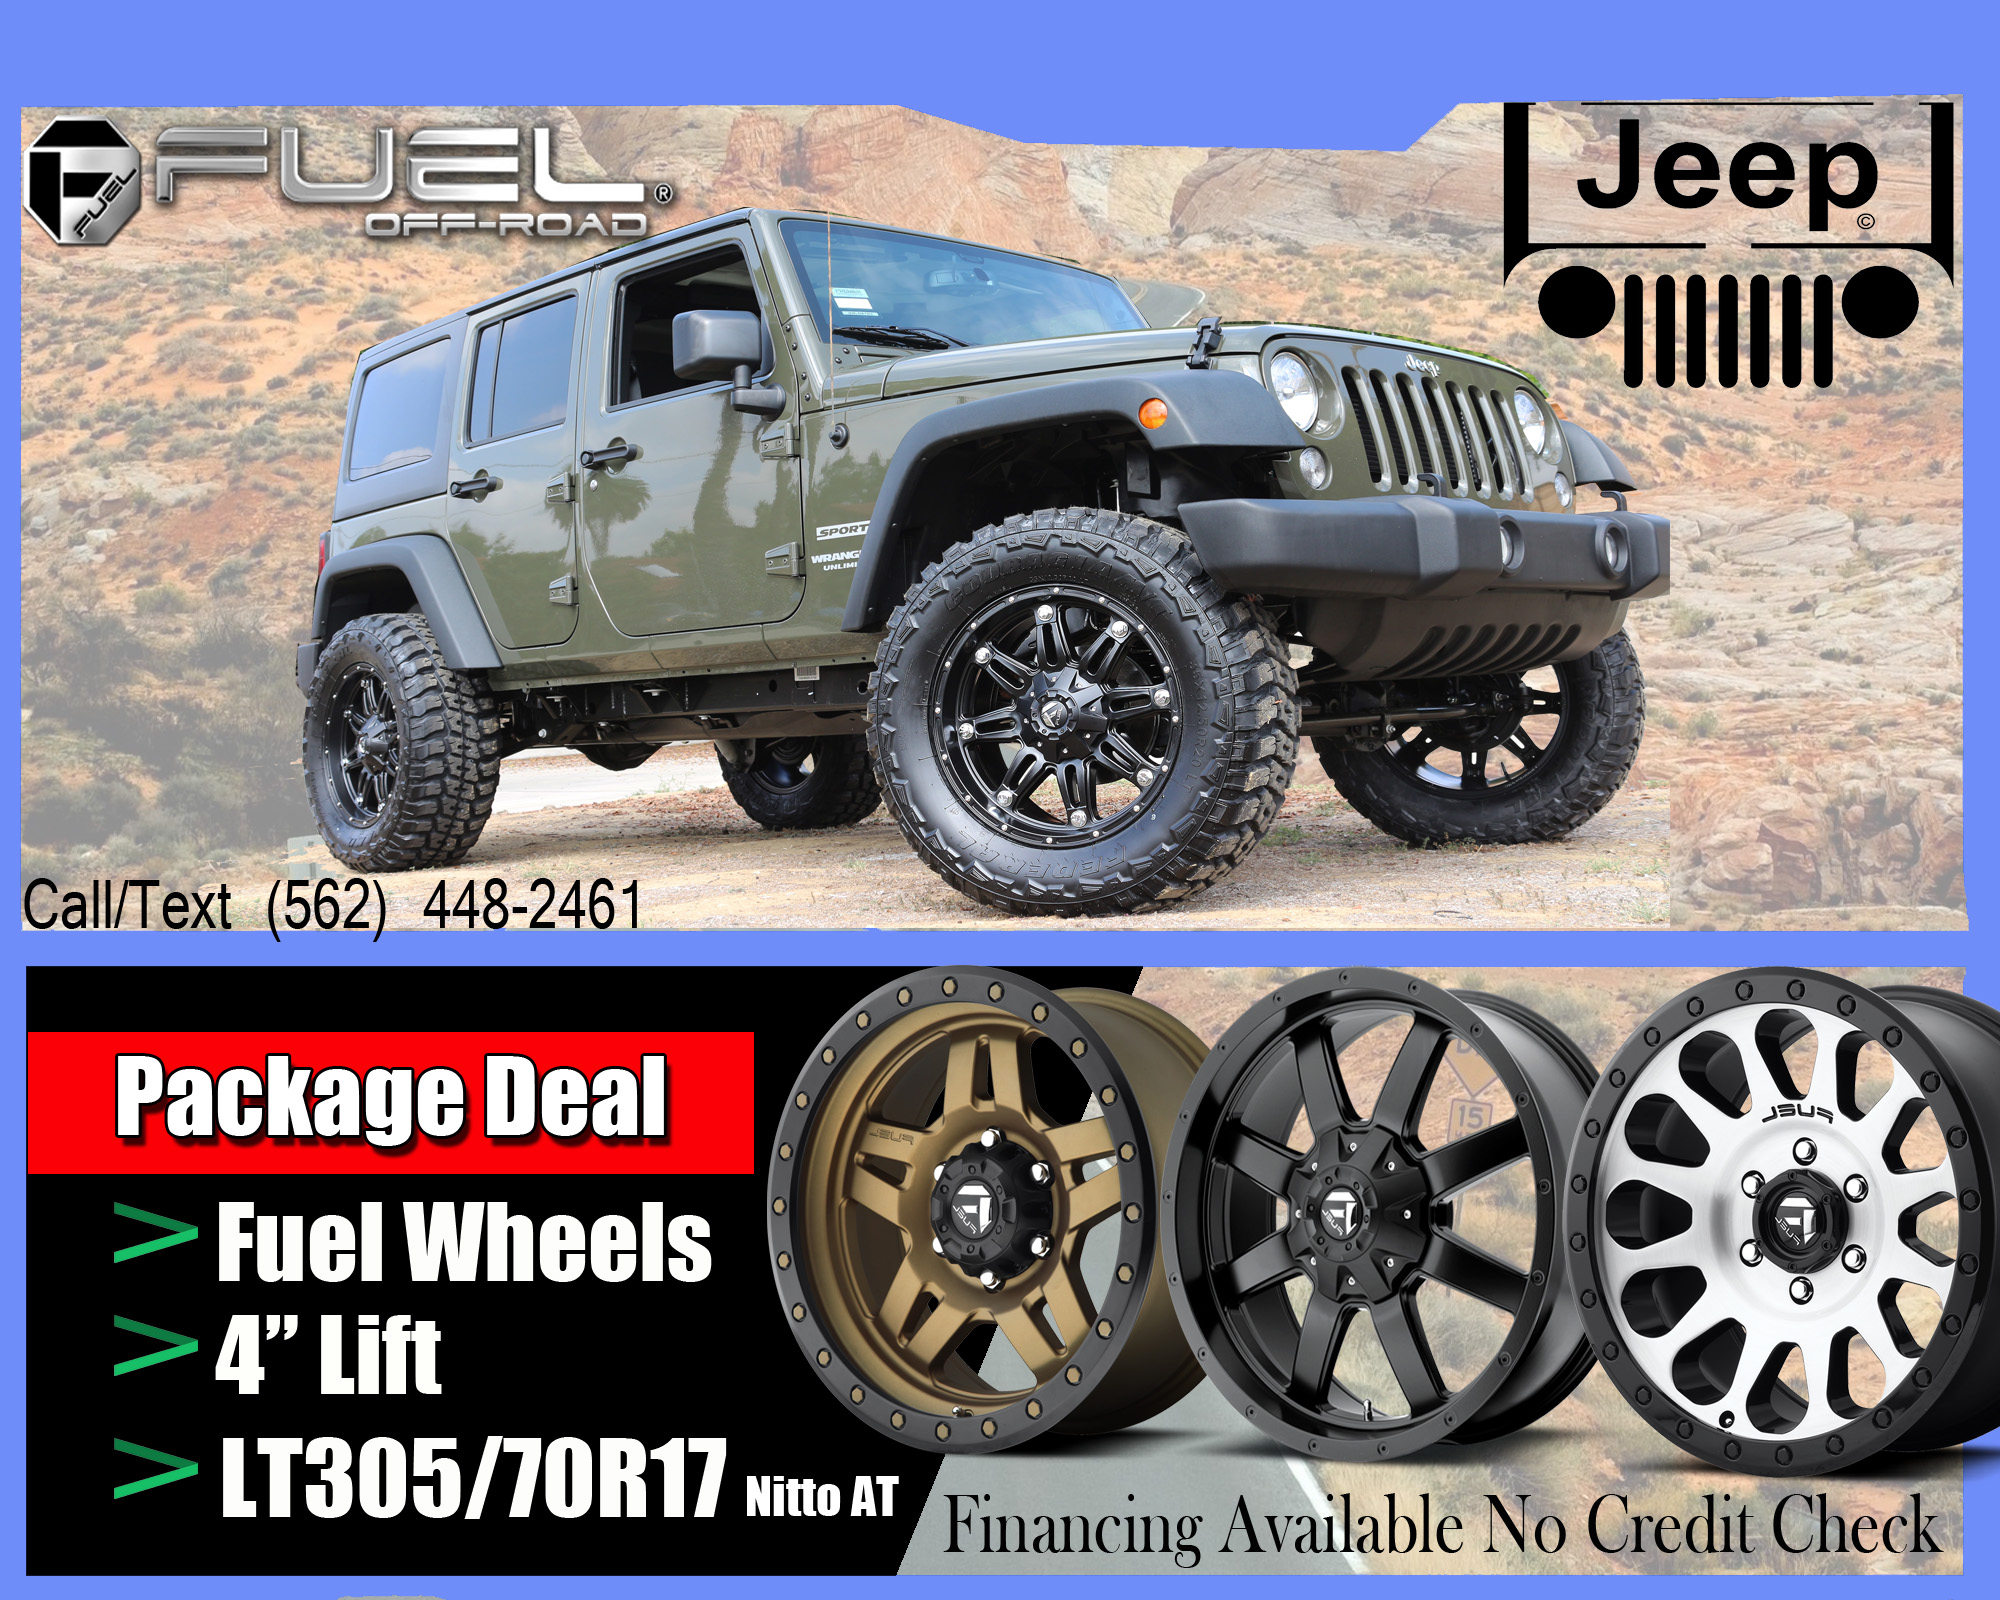 WE HAVE A GREAT DEAL ON JEEPSPACKAGE DEAL FUEL WHEELS 4 LIFTLT30570R17